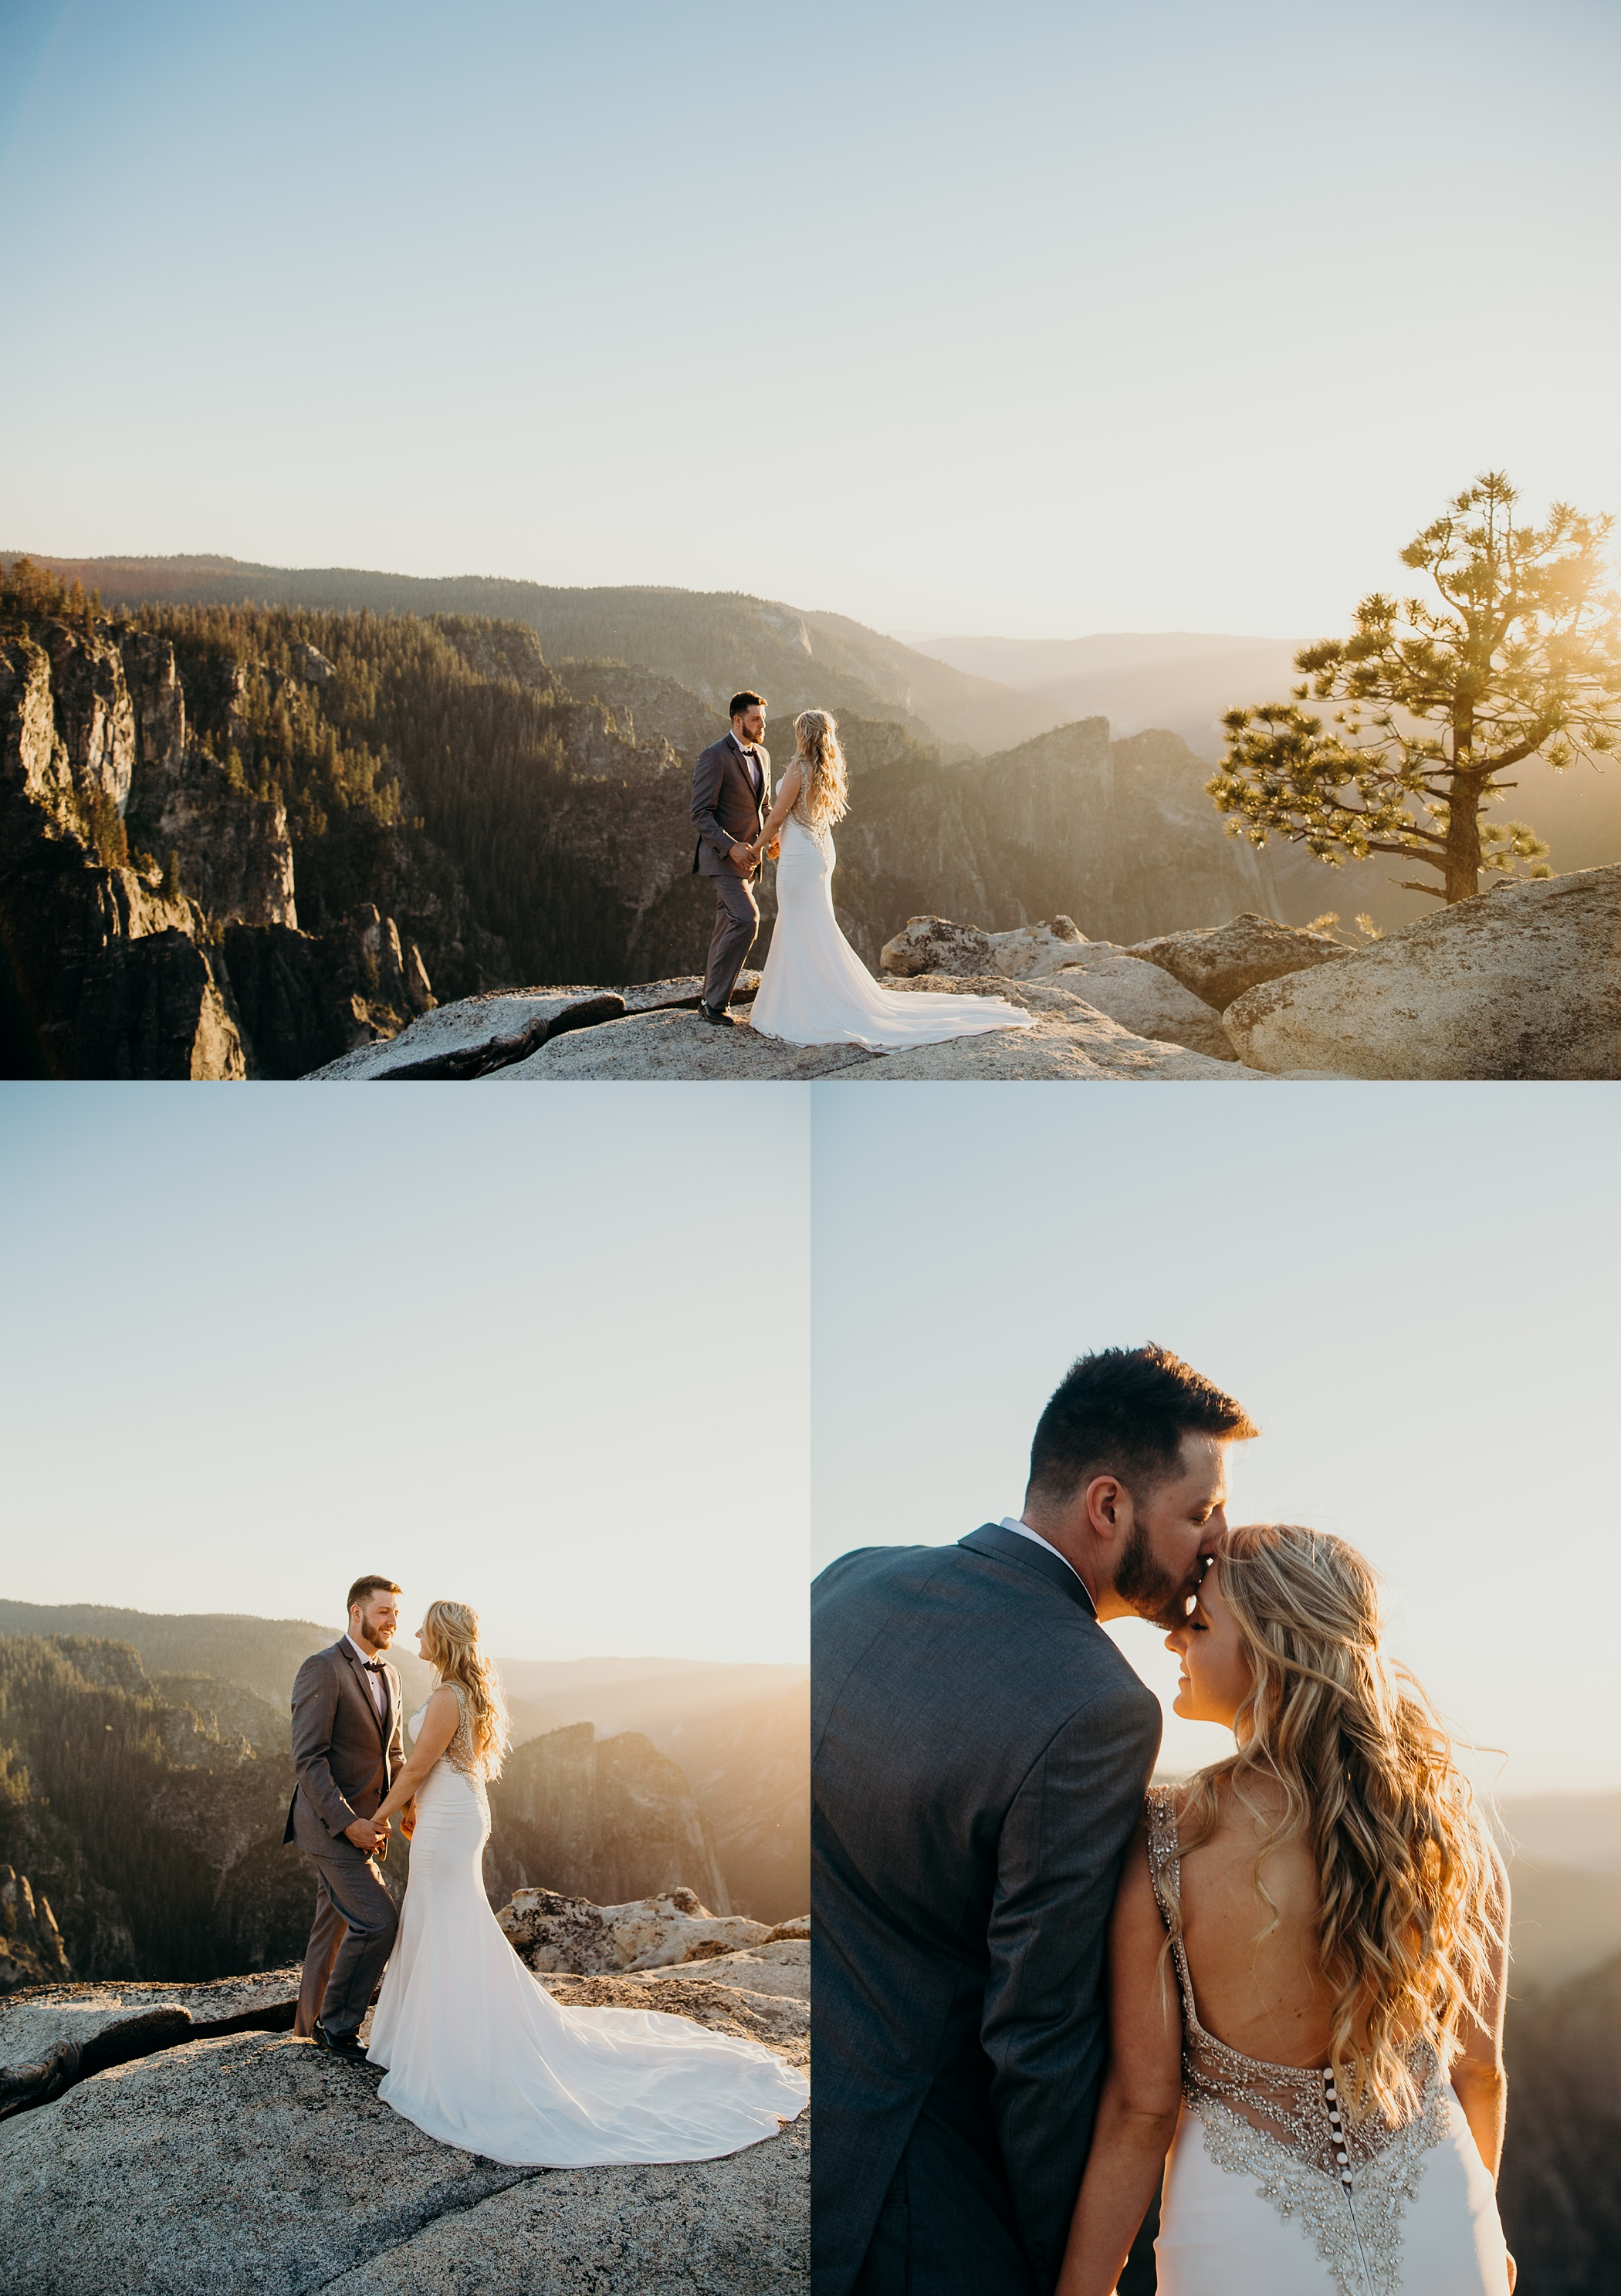 napa california elopement, napa elopement photographer, yosemite elopement, yosemite wedding, yosemite wedding photographer, adventure elopement, adventure wedding, the Johnsons photo, Arkansas wedding photographer